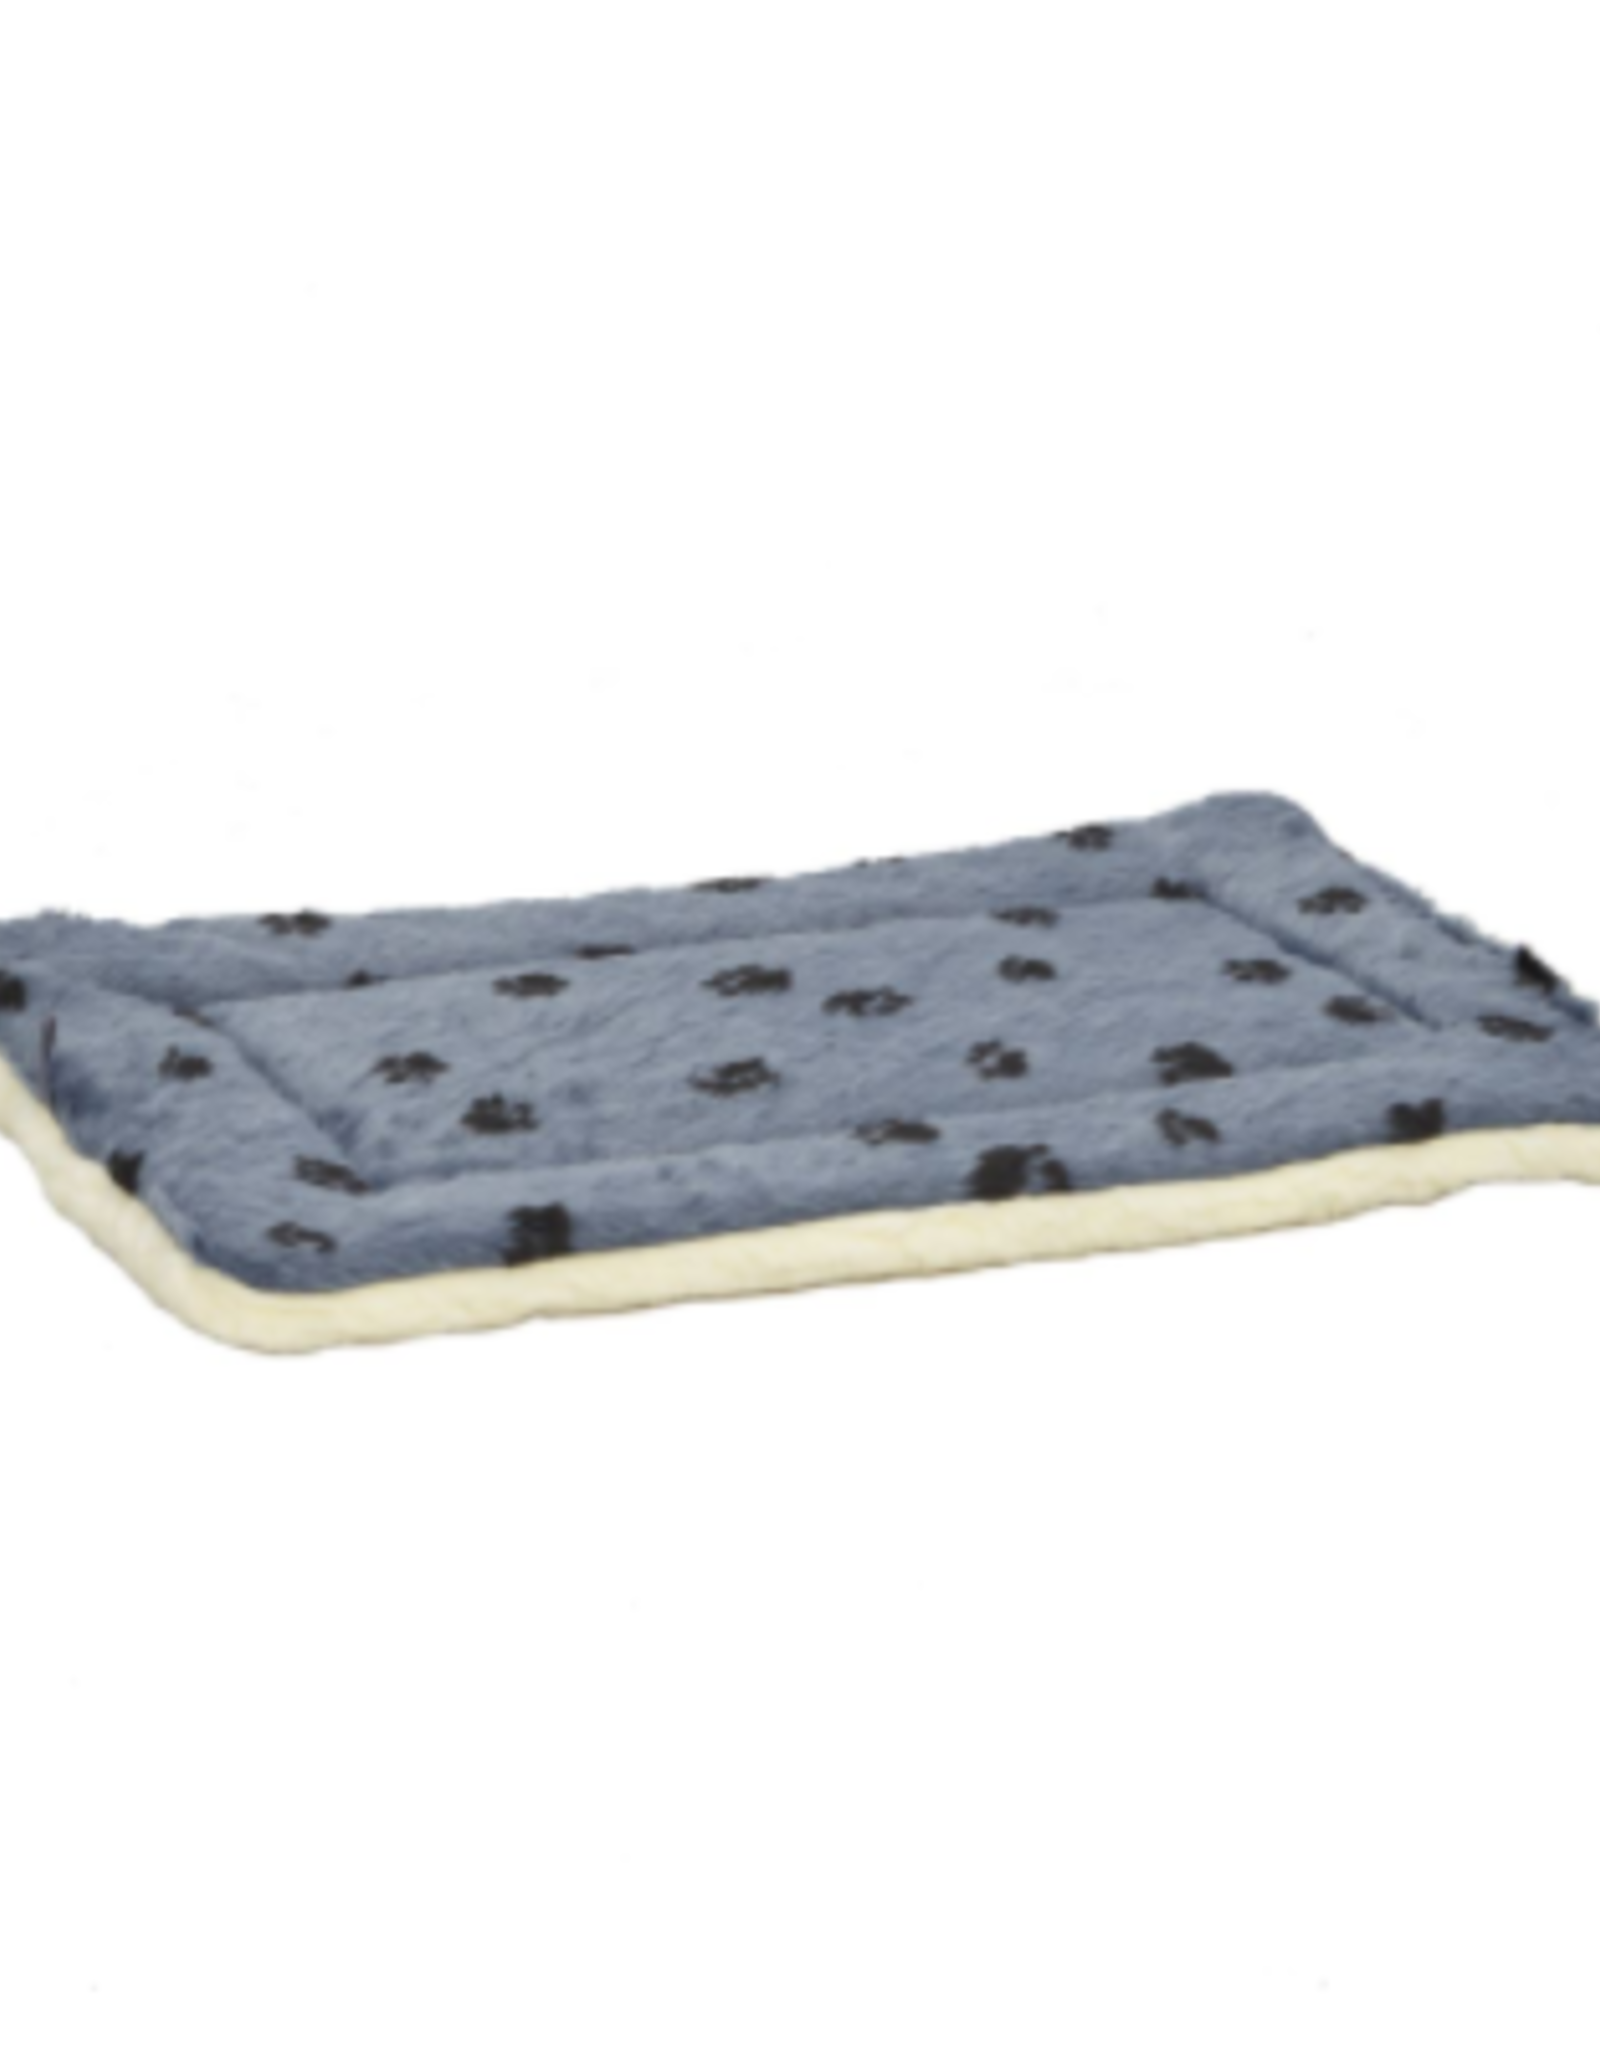 QUIET TIME REVERSIBLE BED 35X23